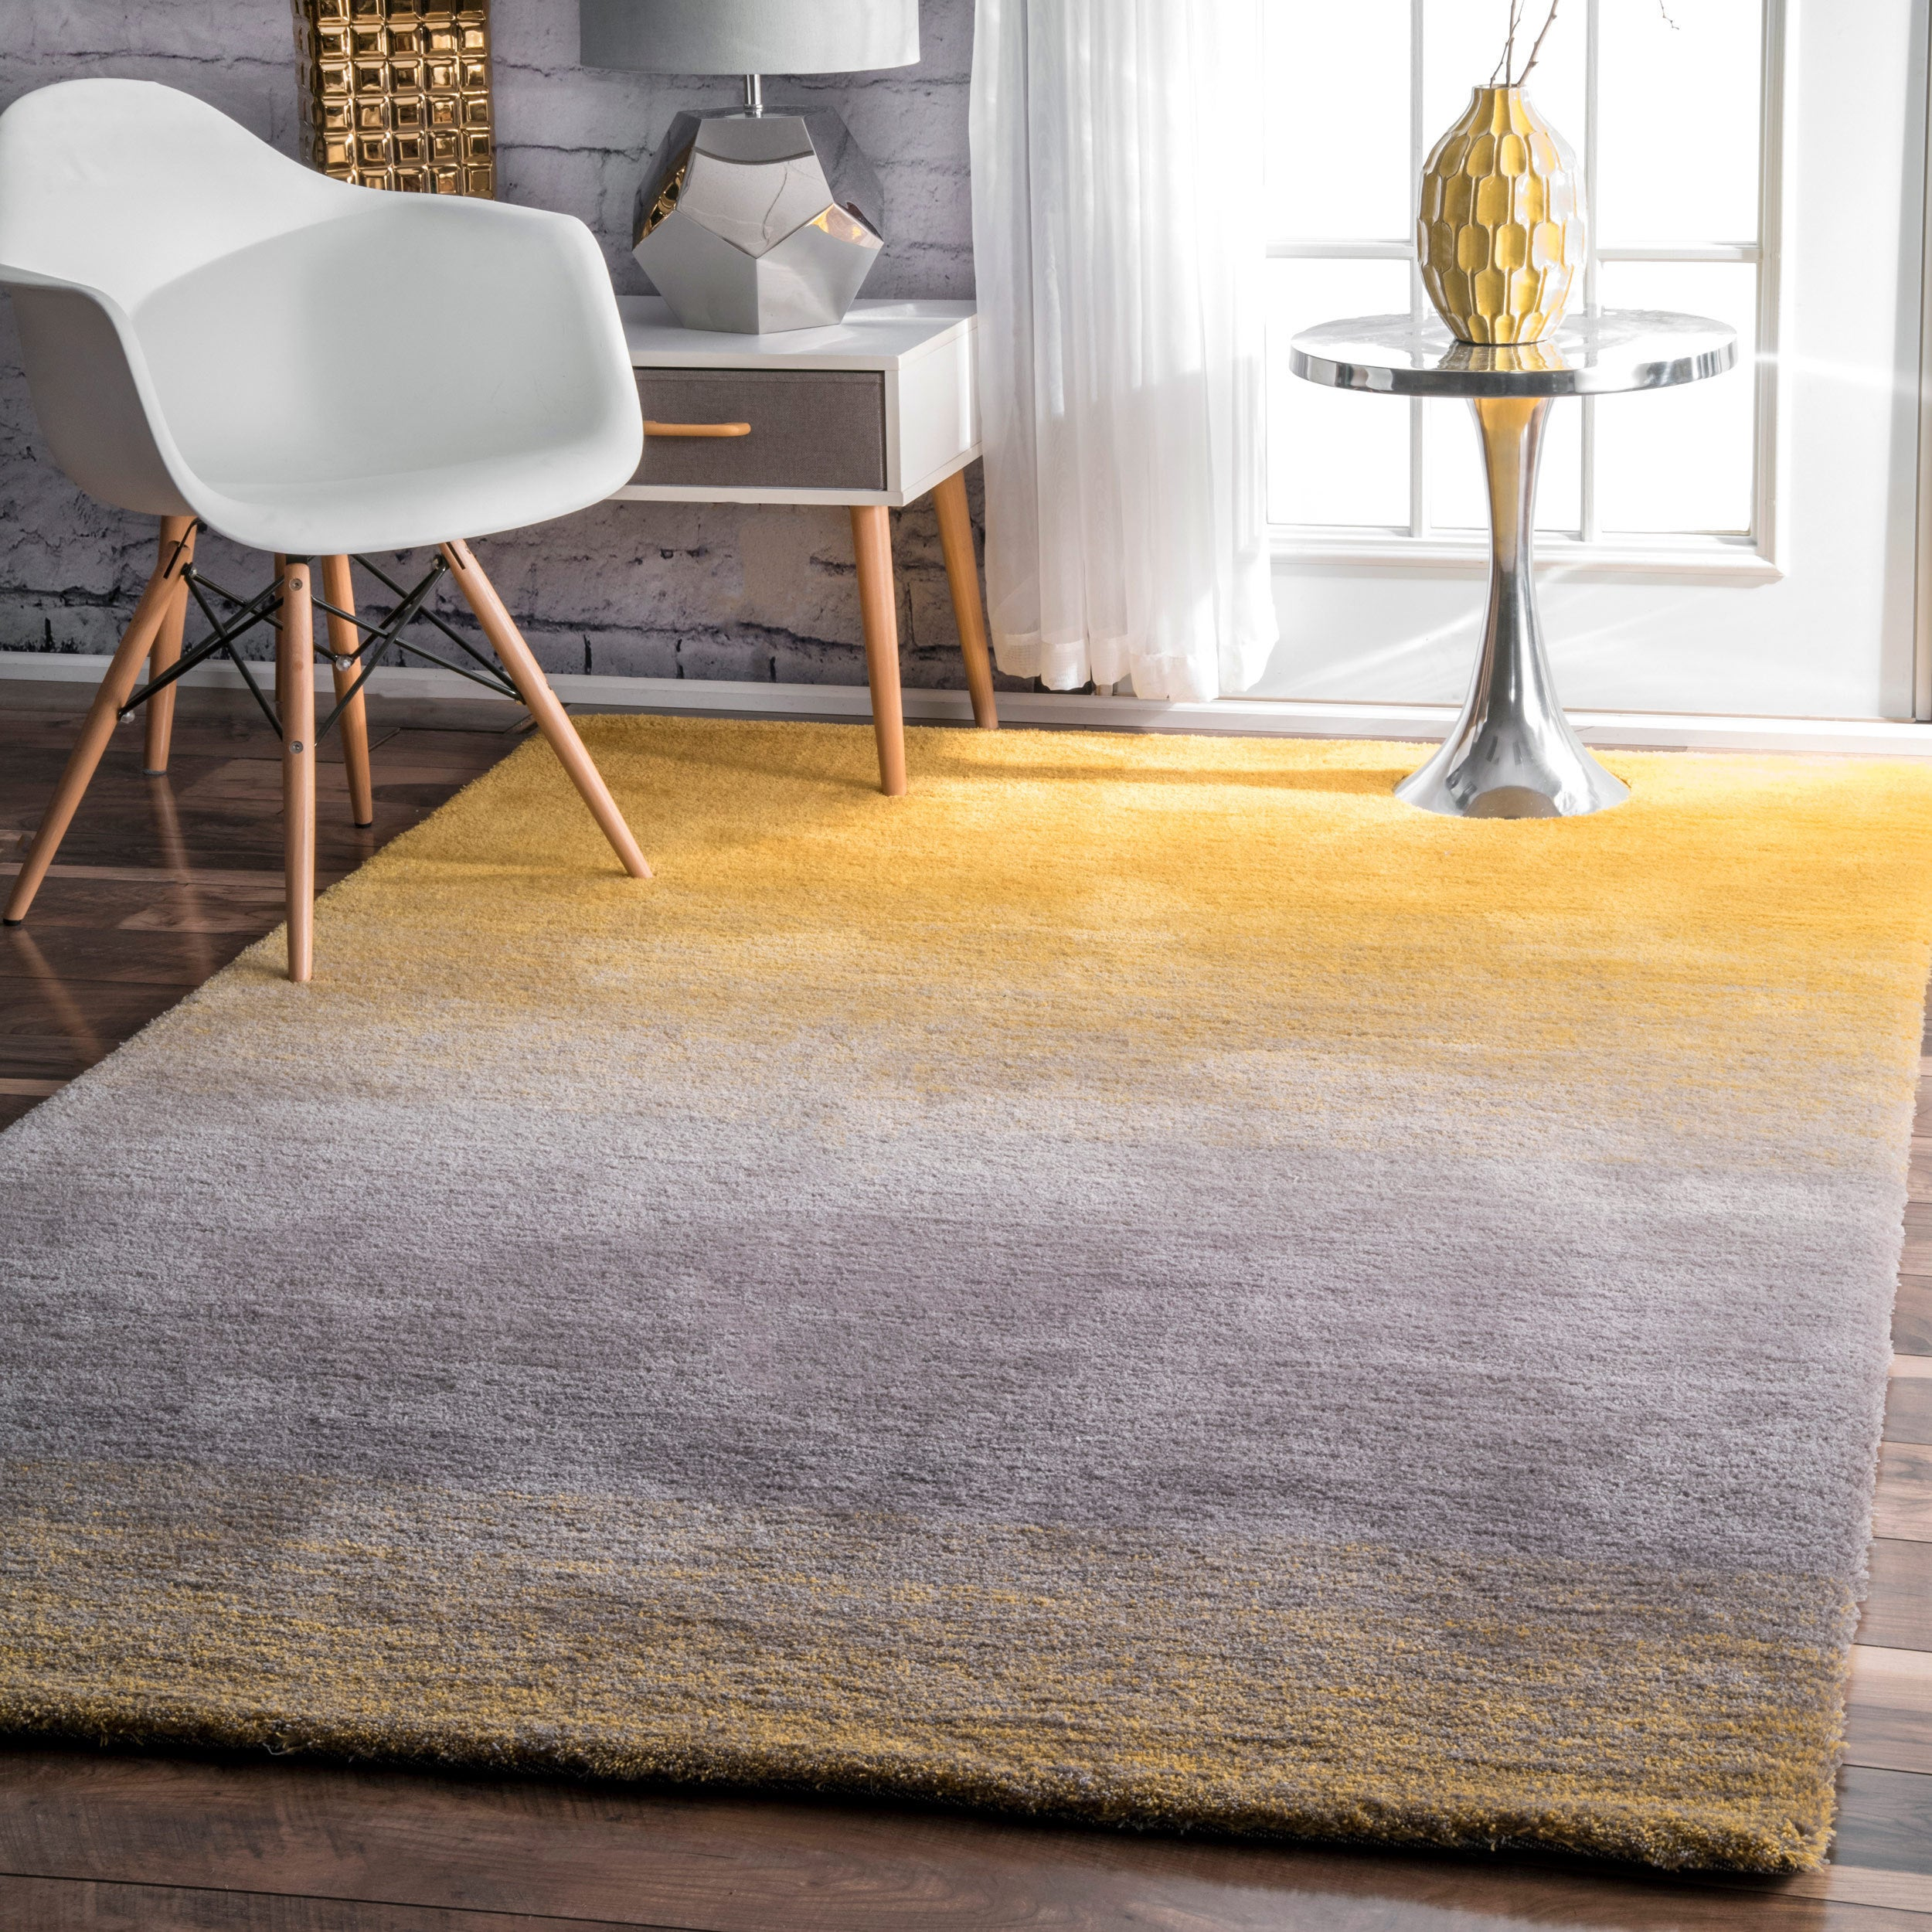 Shop Nuloom Handmade Soft And Plush Ombre Shag Yellow Rug